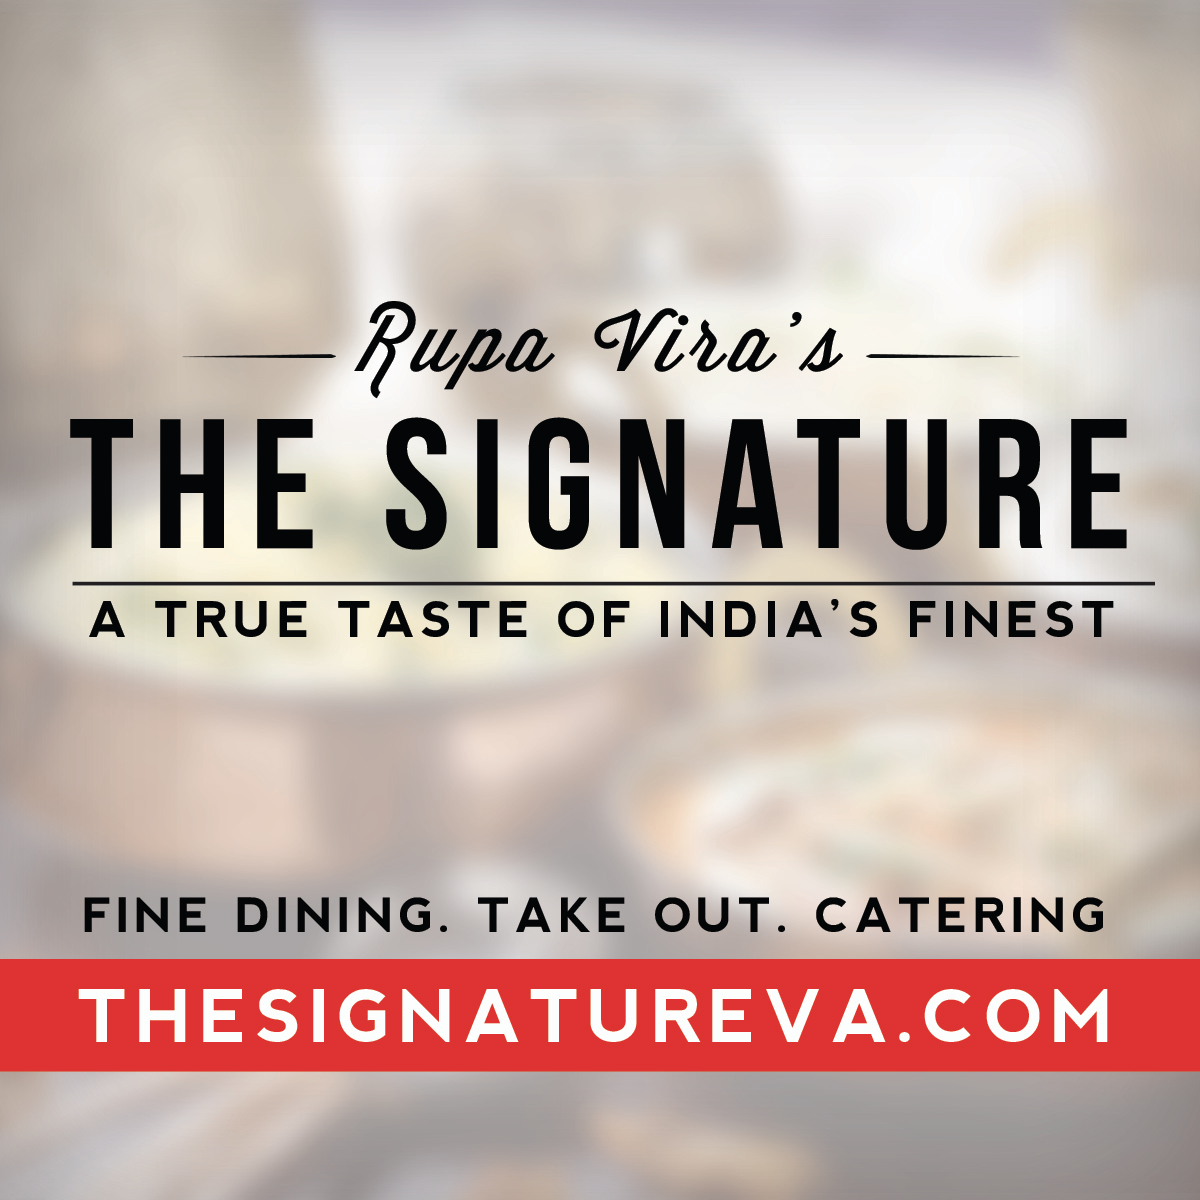 Rupa Vira's The Signature - Finest Indian Cuisine image 5